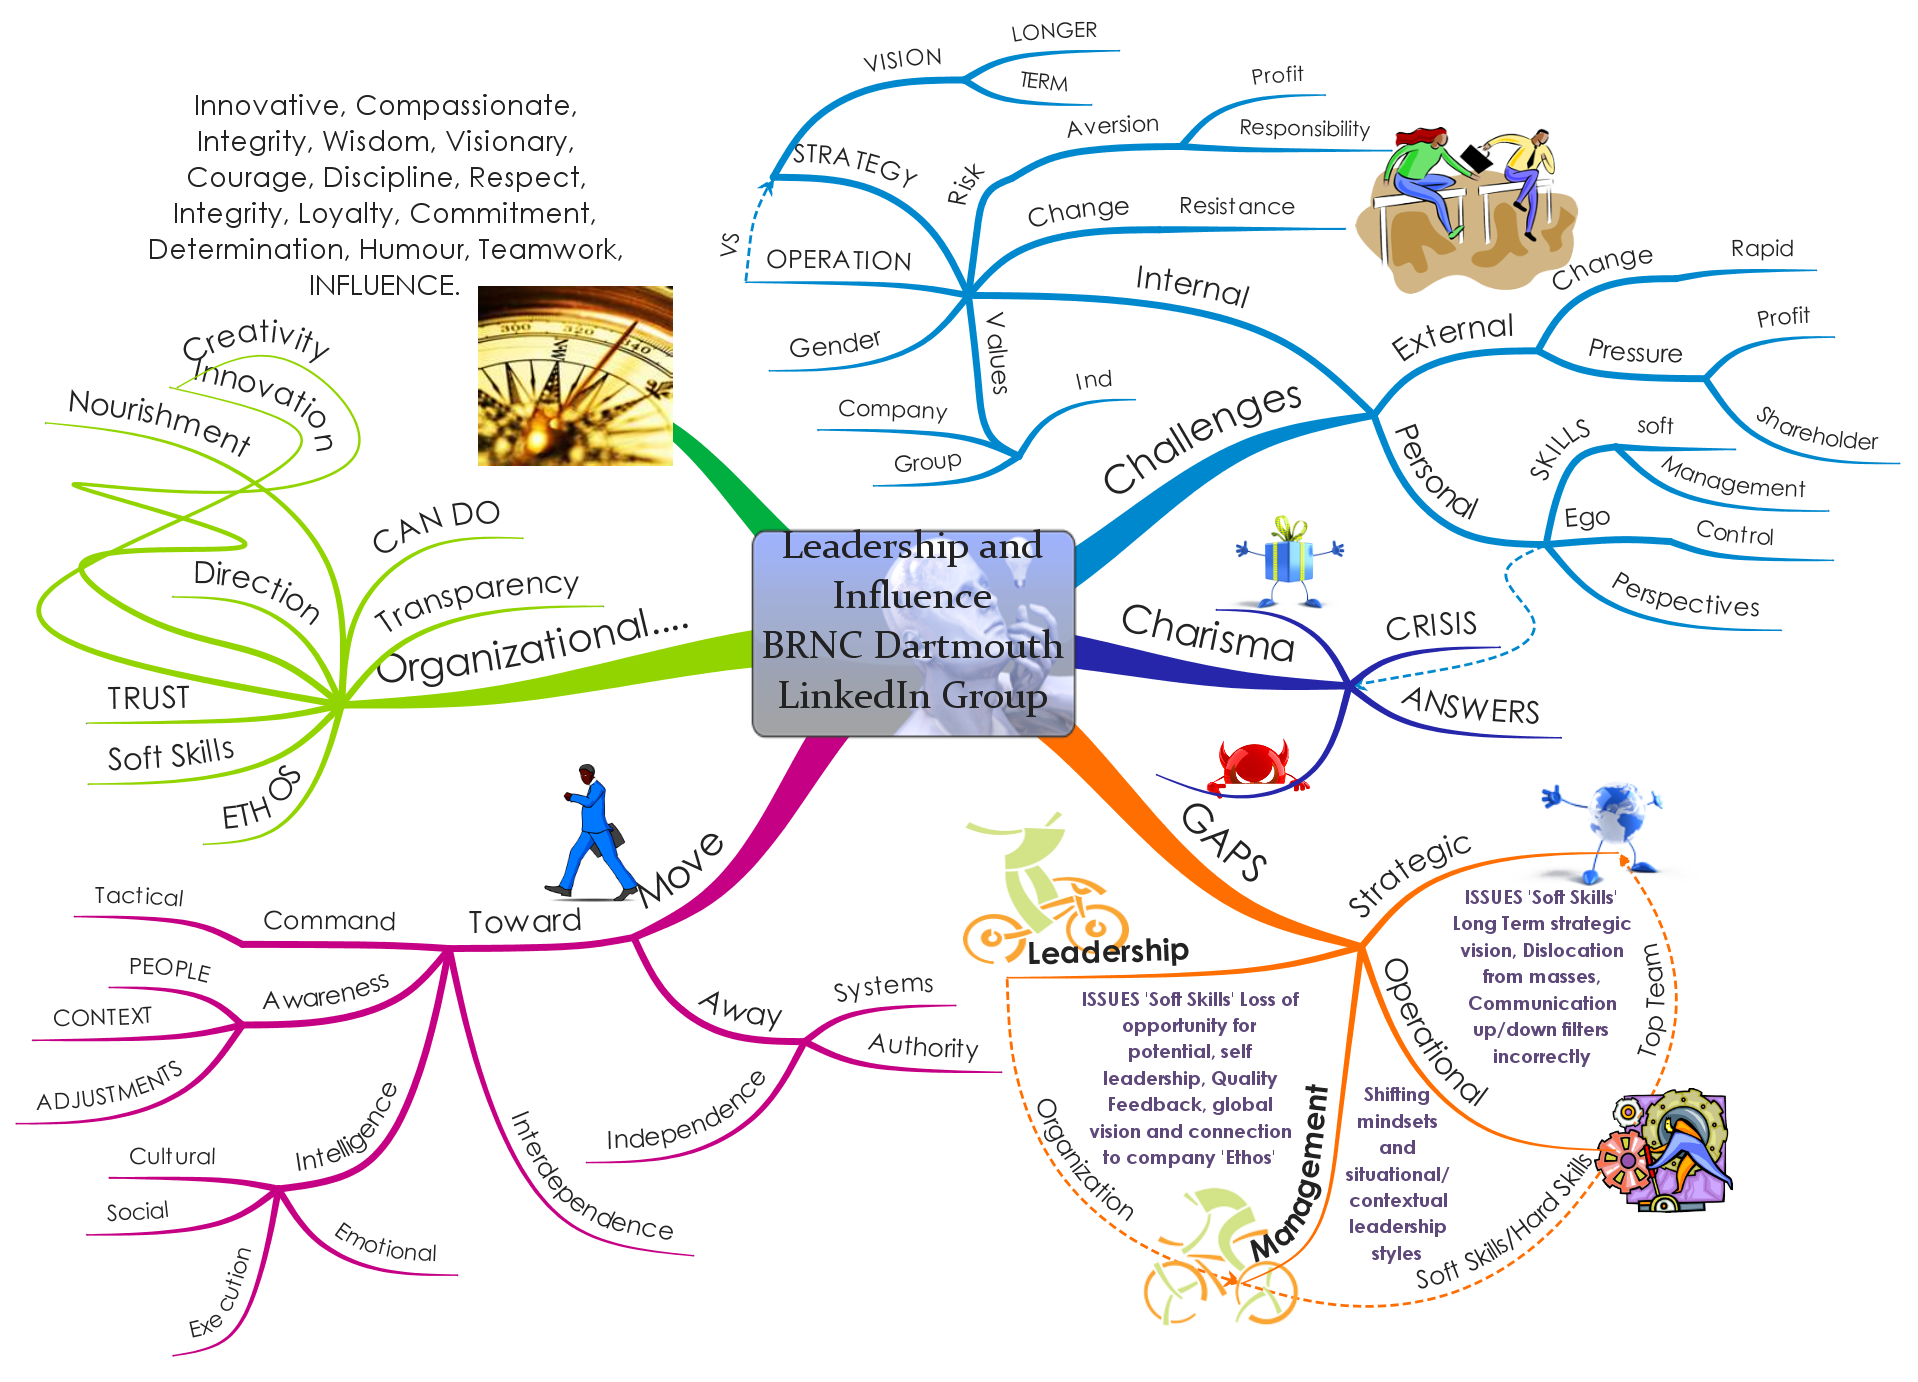 Mind Maps Free Templates - Yahoo Search Results Yahoo Image Search ...